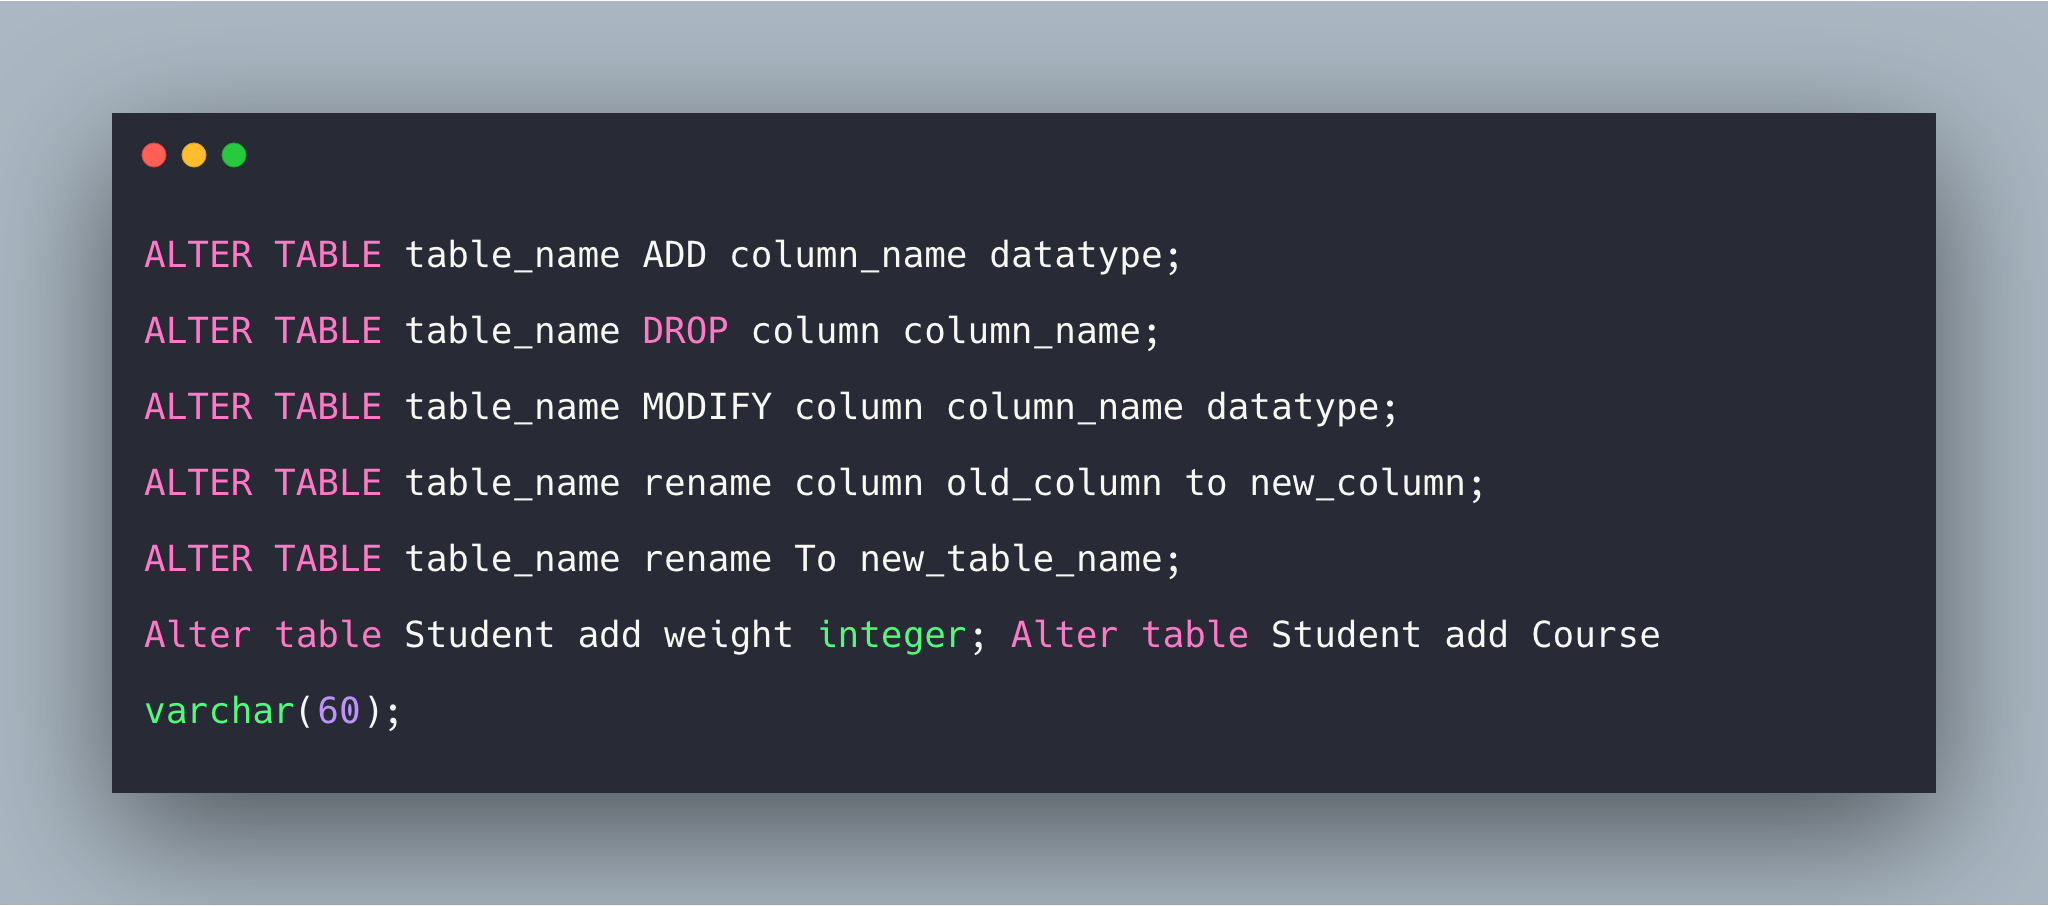 SQL ALTER TABLE Example  How To Alter Table in SQL